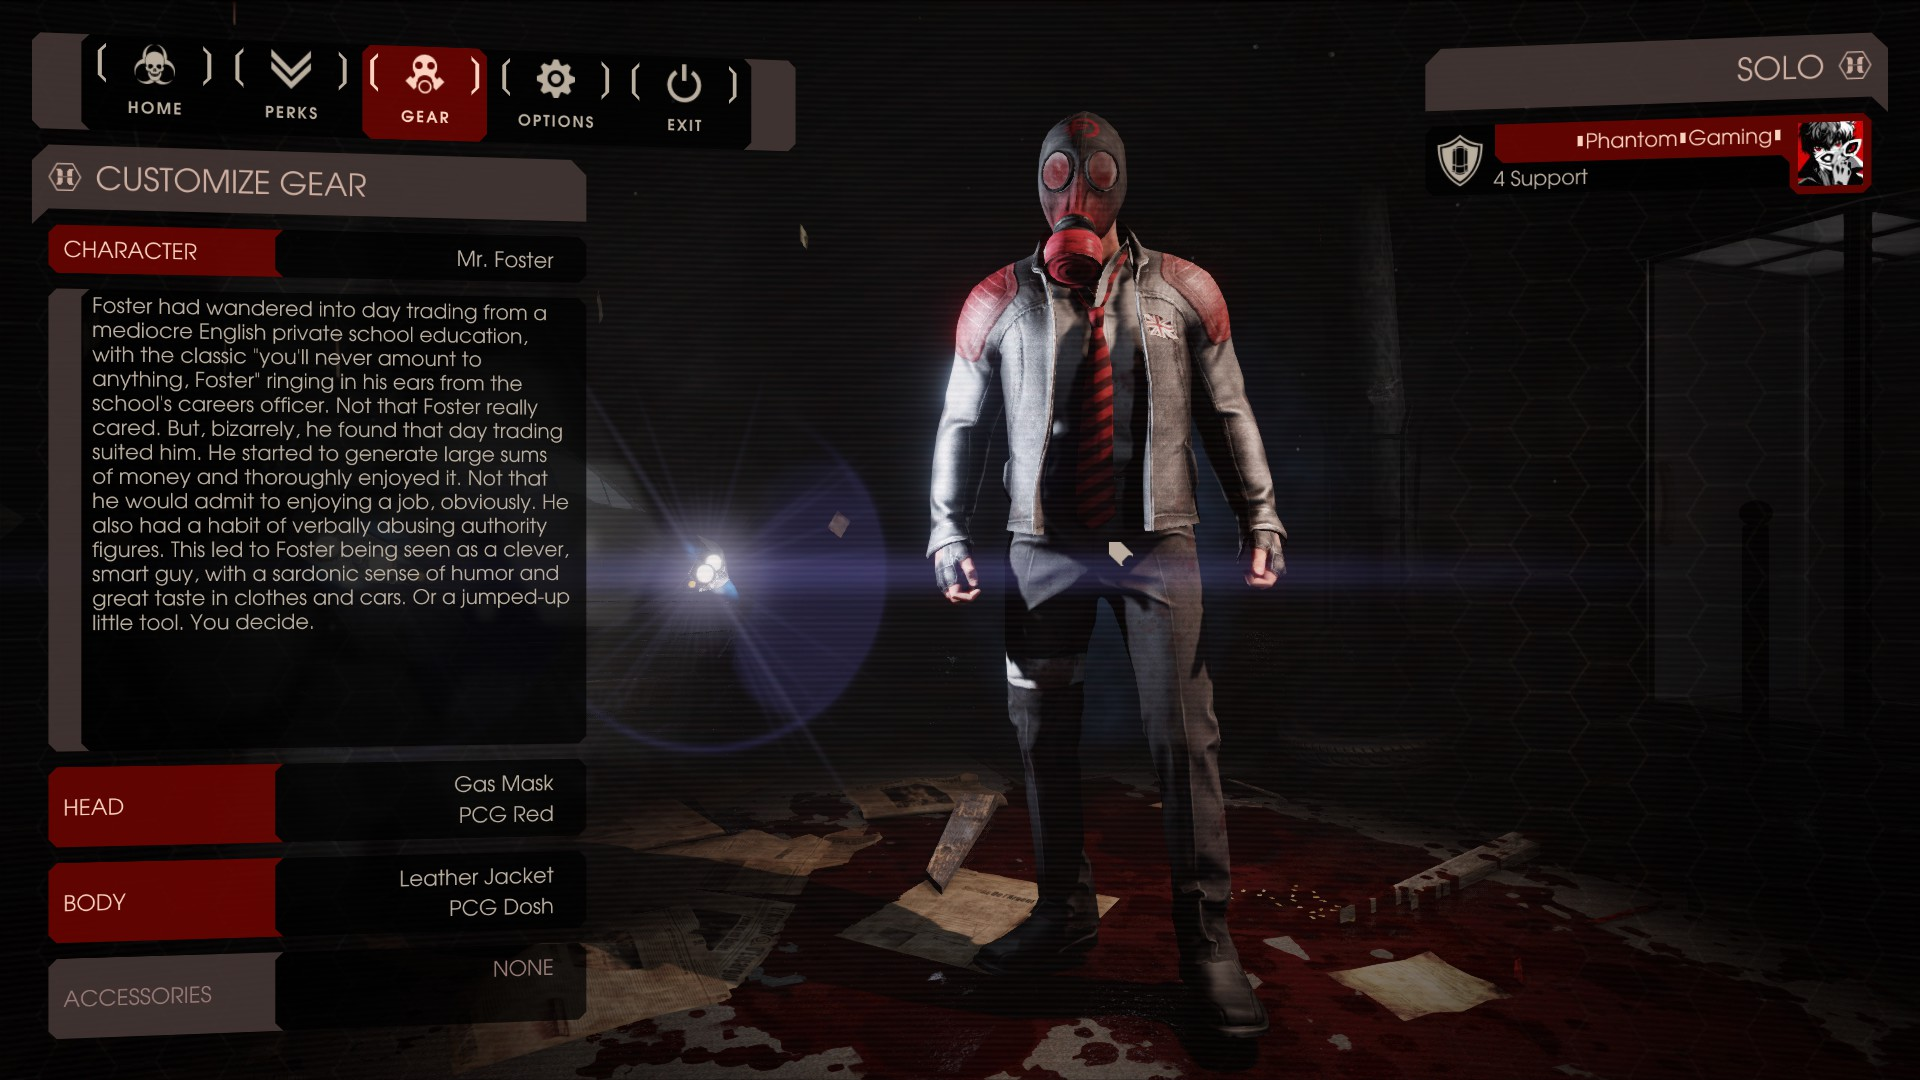 Buy killing floor 2 mr foster dosh skin steam dlc pc for Pc gamer killing floor 2